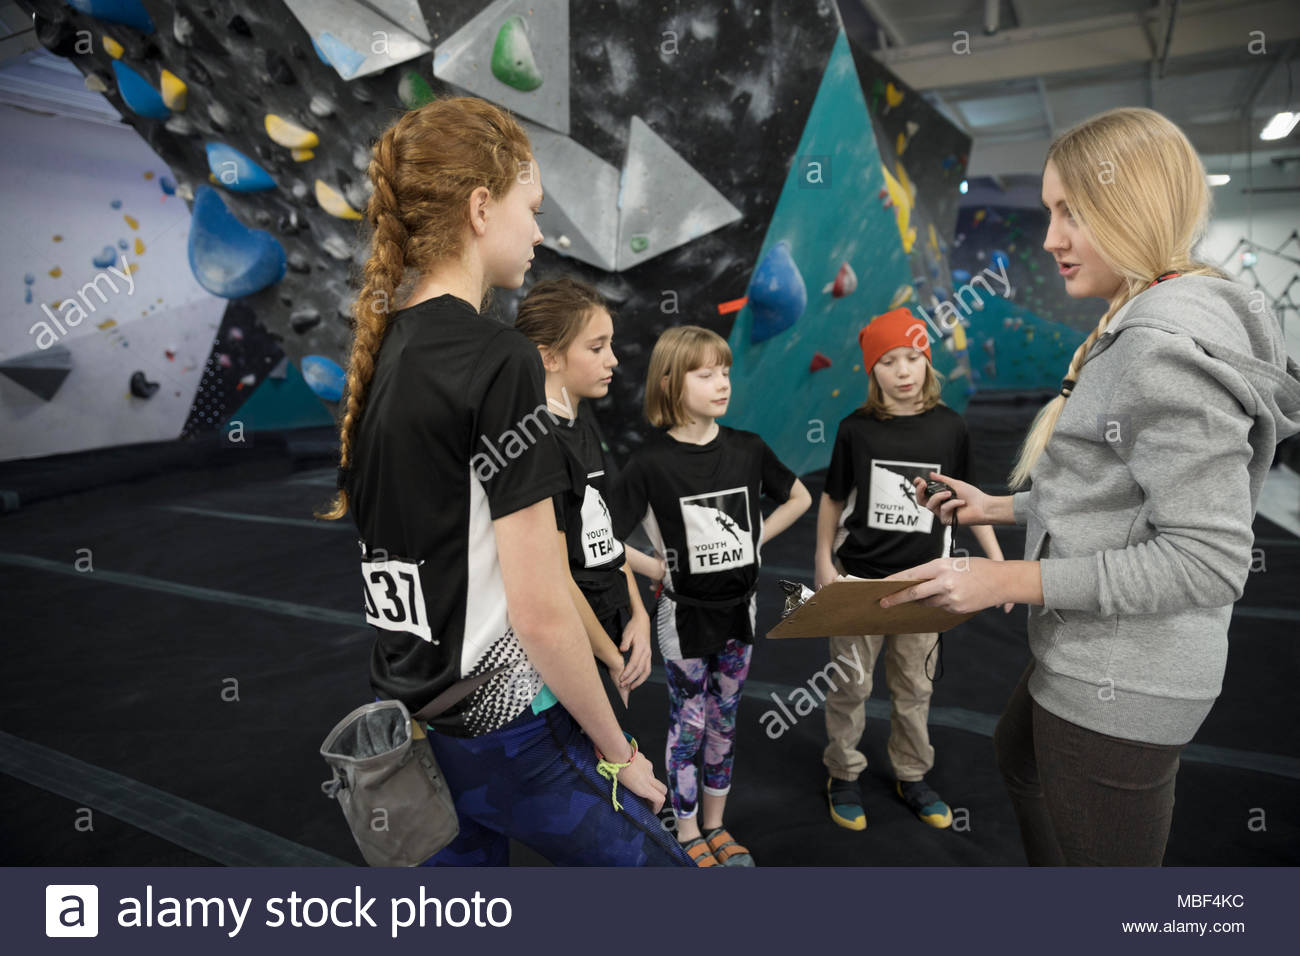 Female instructor with clipboard giving lesson to rock climbing students at climbing wall in climbing gym - Stock Image